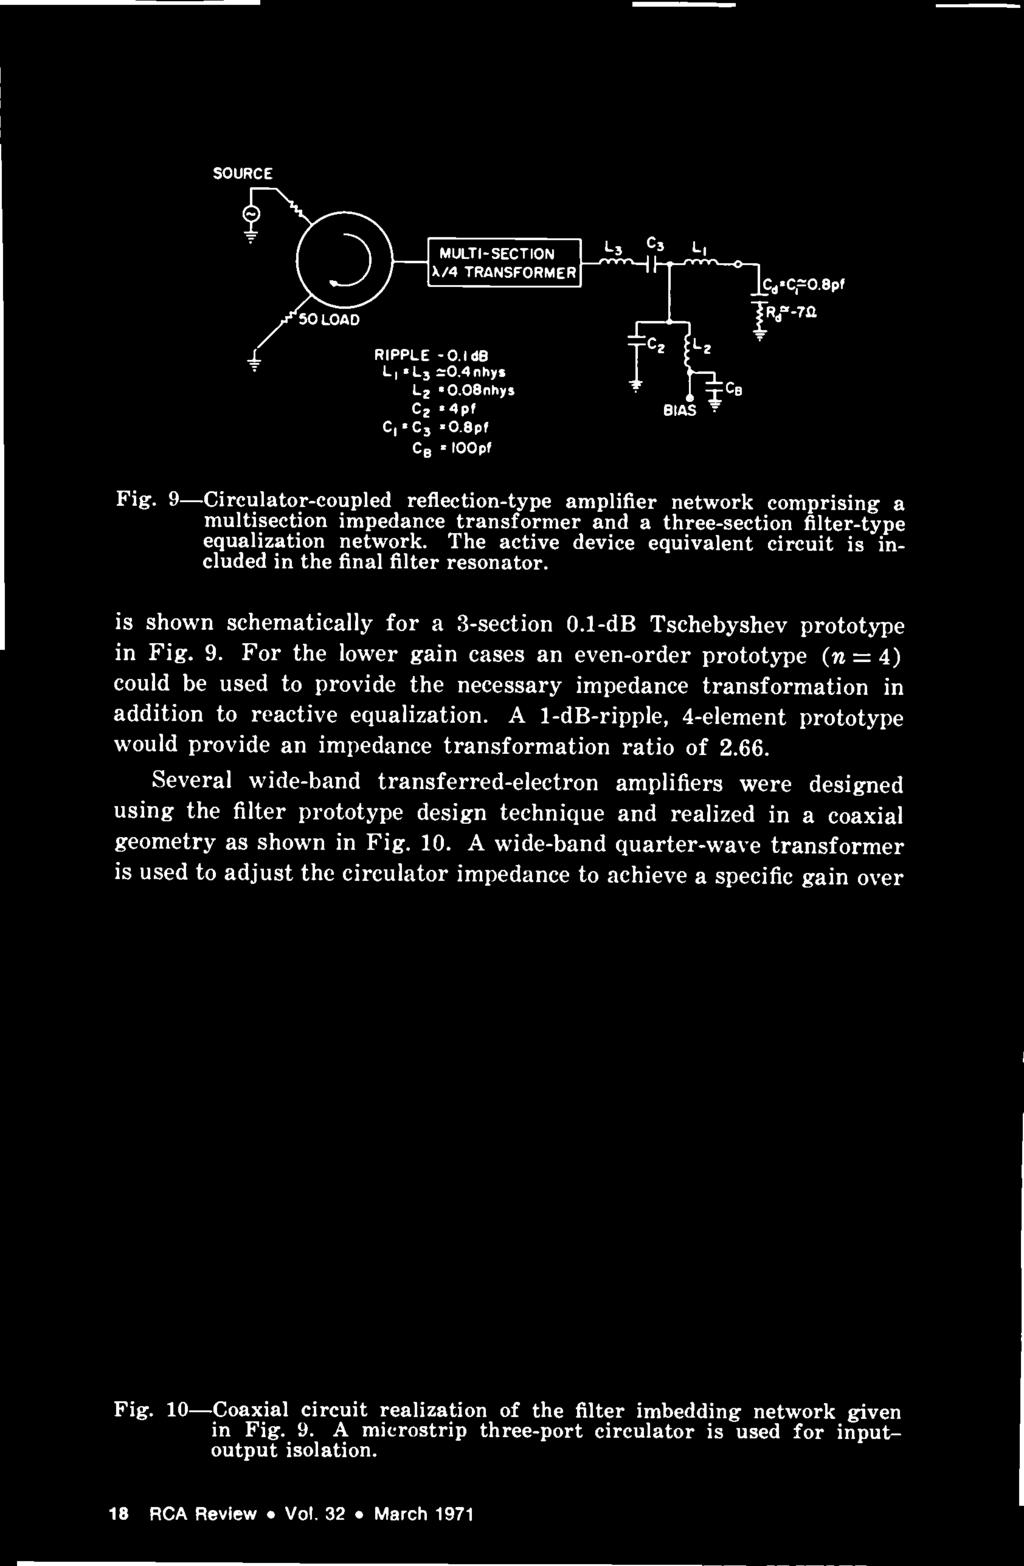 Review Mcbdo Contents March 1971 Volume 32 Number 1 Pdf Rc Timing Circuit Simulates An Developer Andrew Duffy The Active Device Equivalent Is Included In Final Filter Resonator Shown Schematically